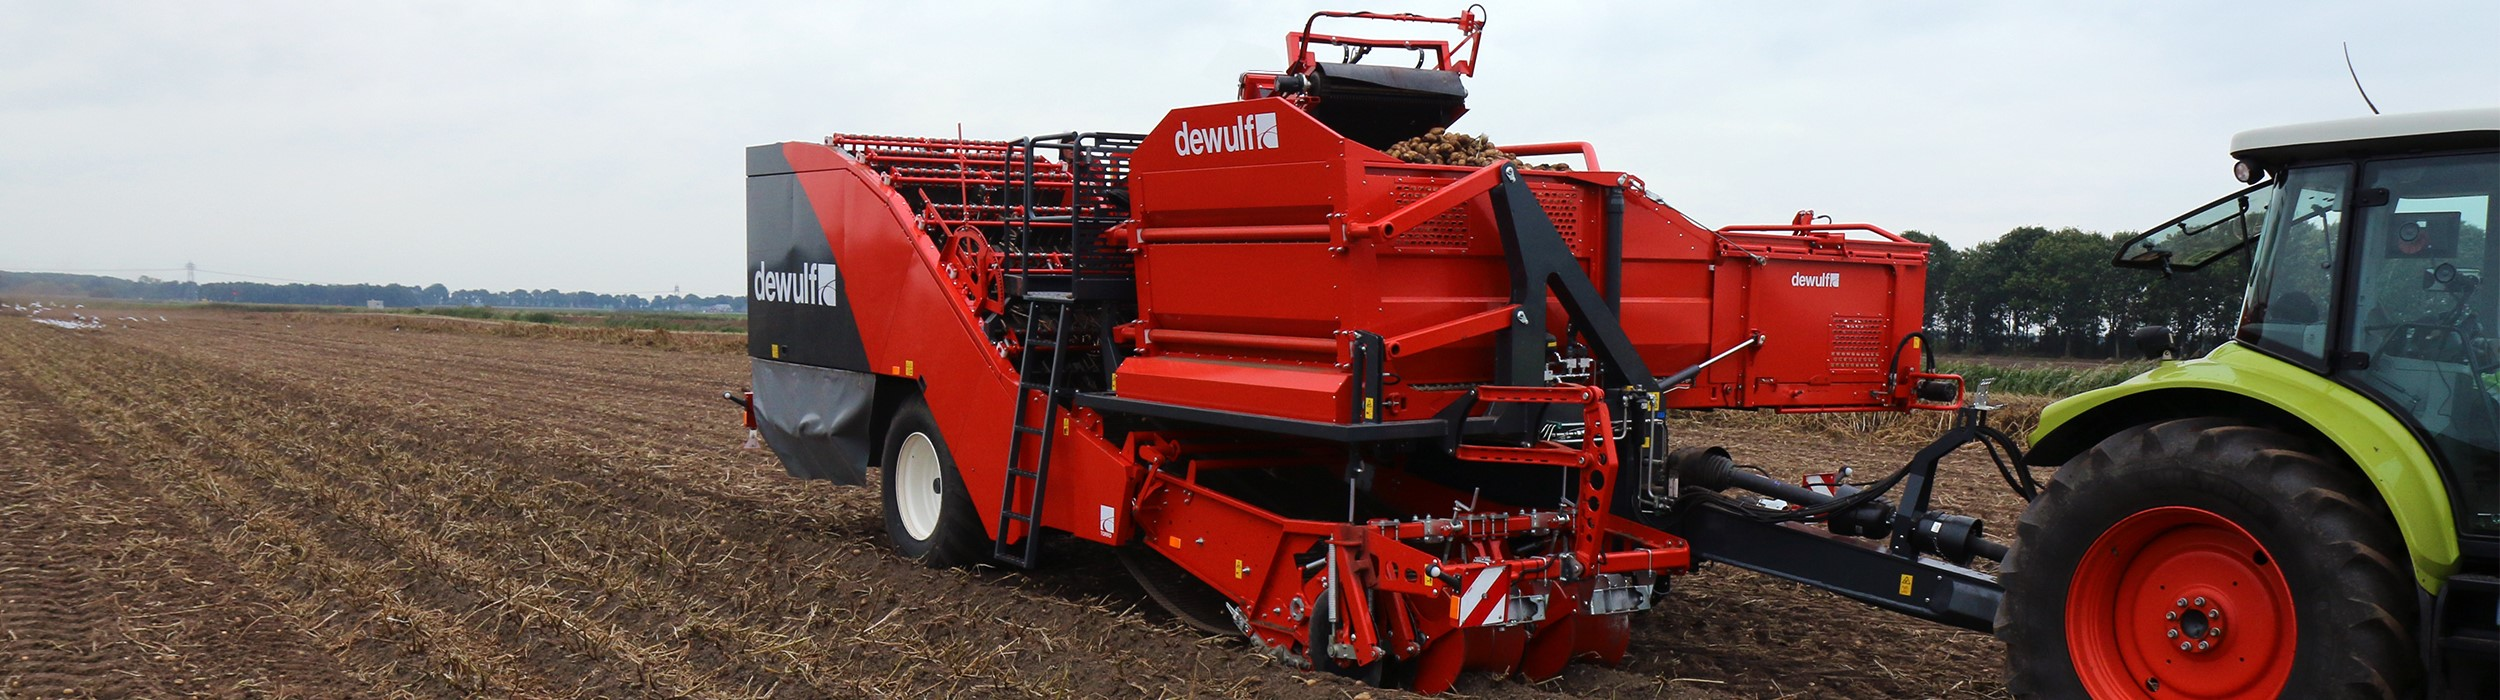 Trailed 2-row sieving harvester